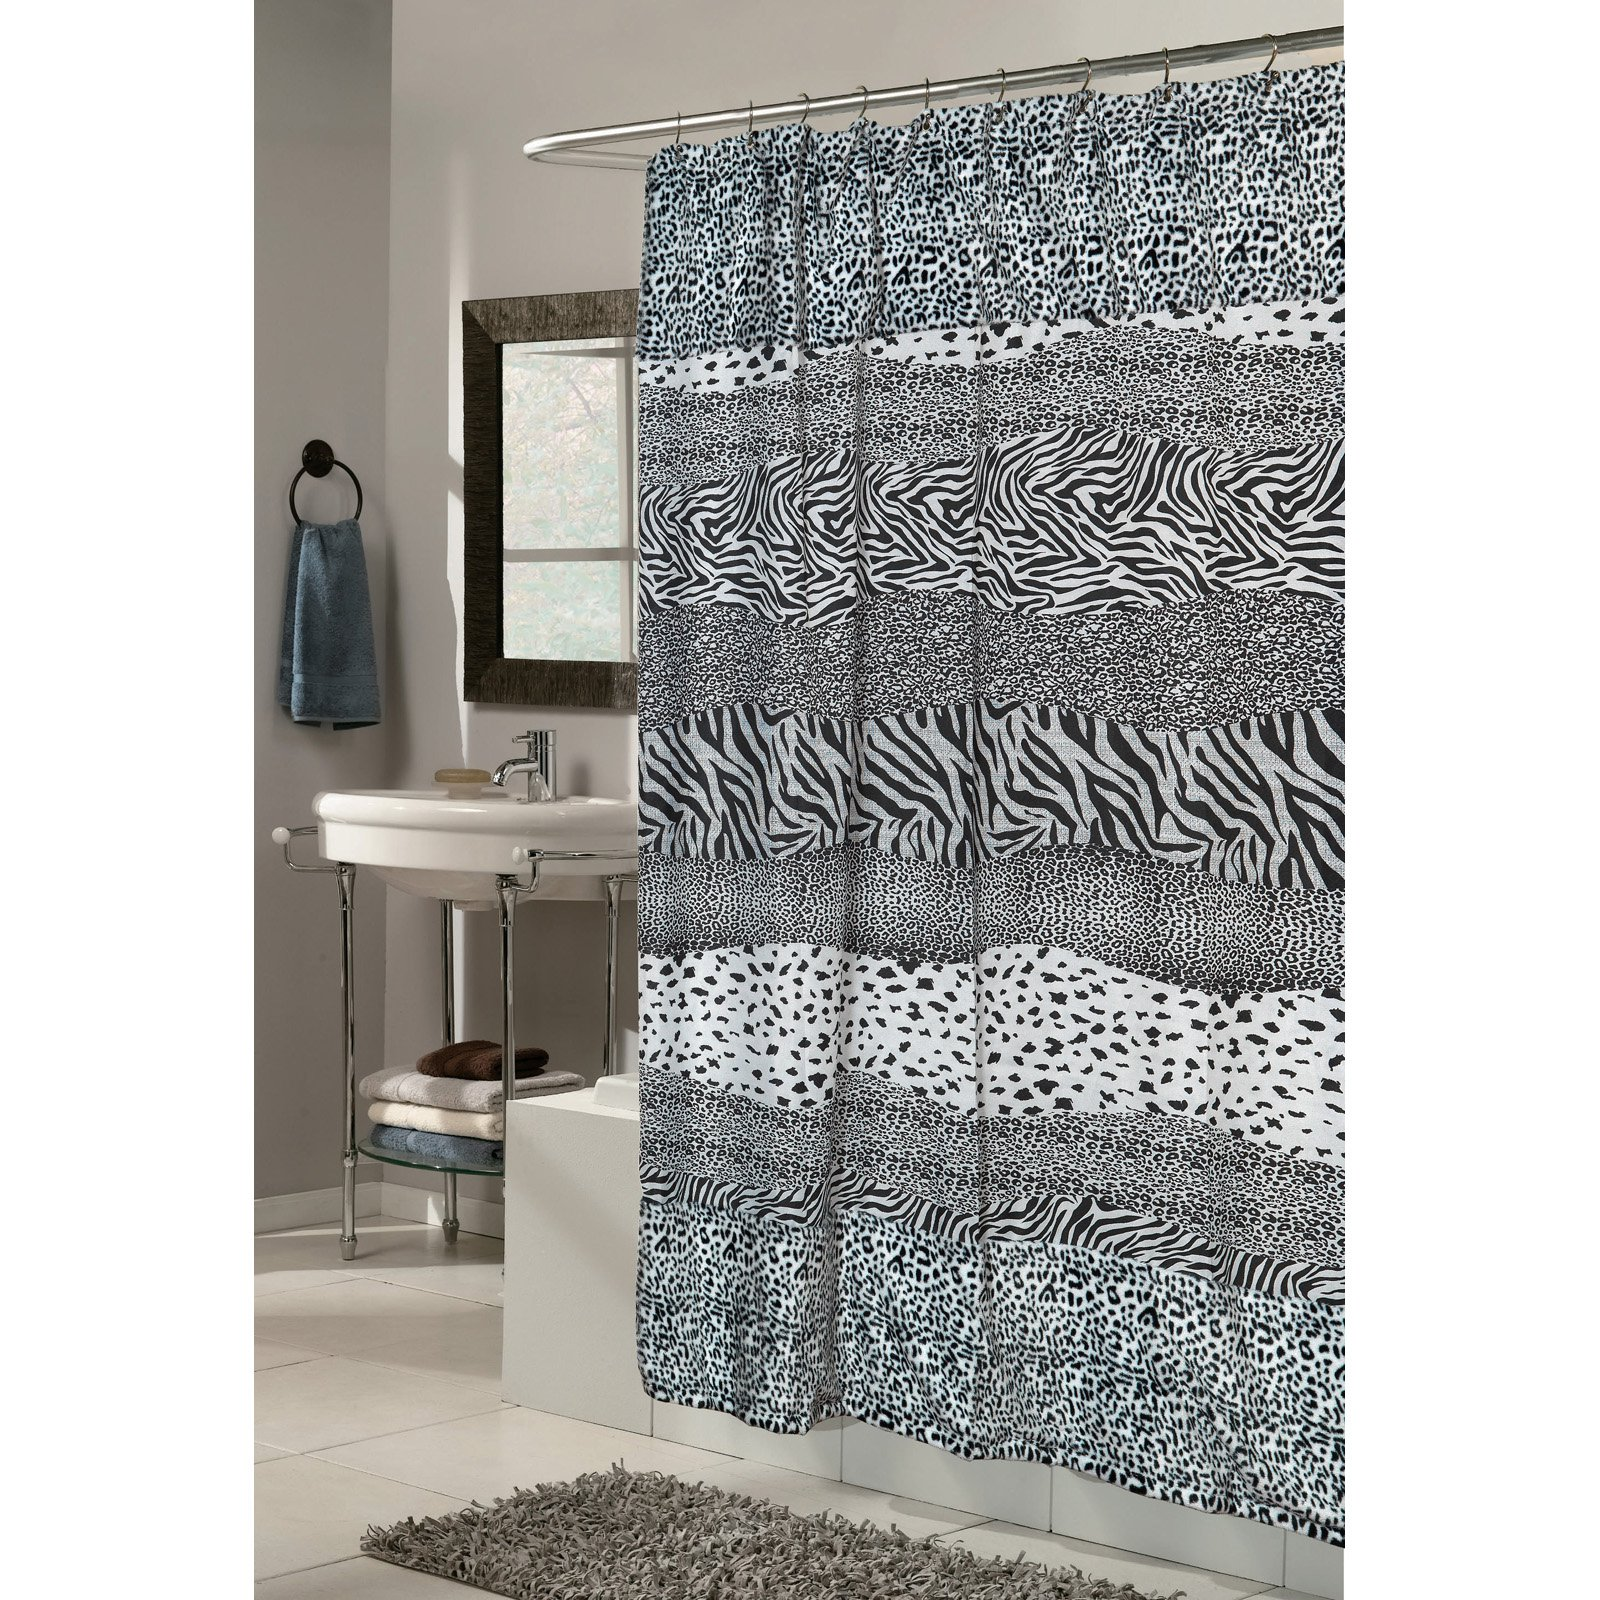 Carnation Home Fashions Animal Instincts Faux Fur Stripe Print Shower Curtain with PEVA Liner